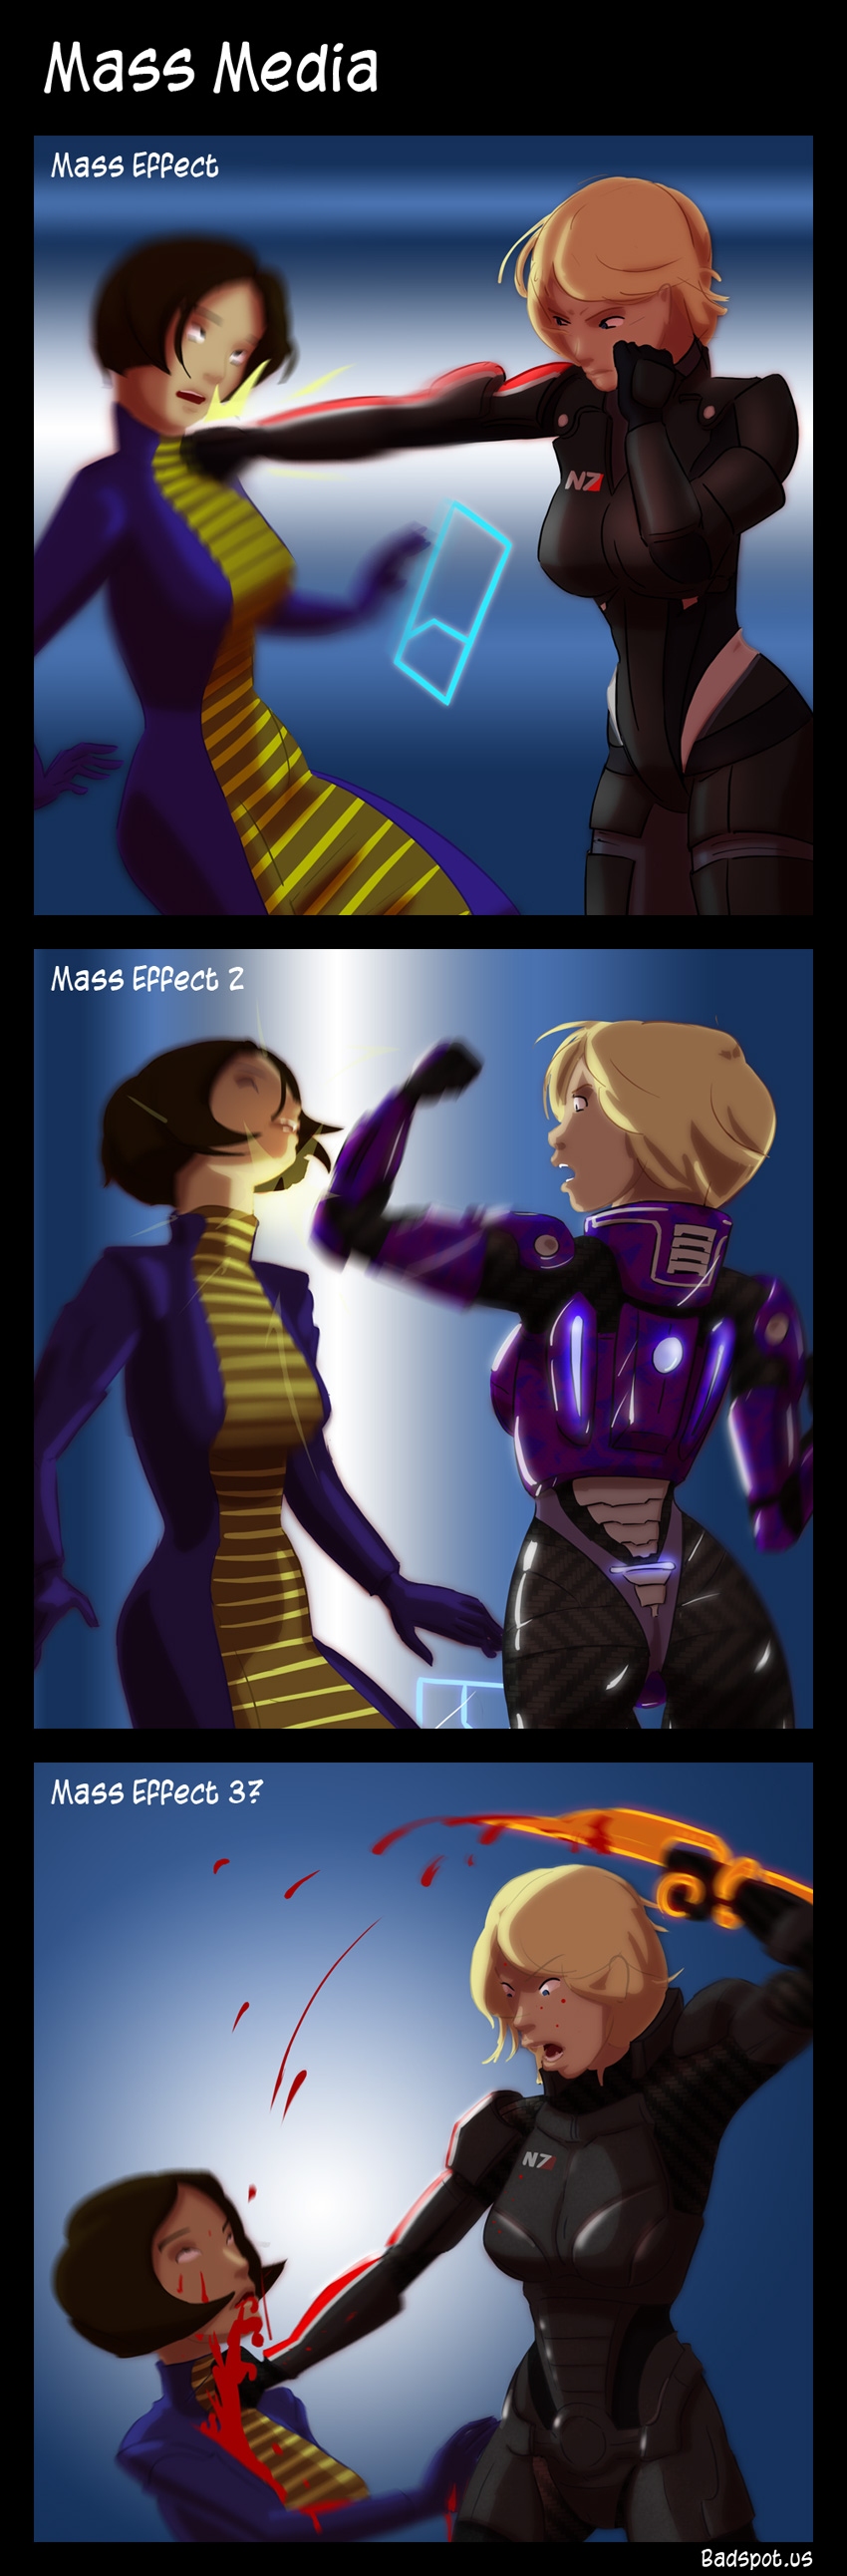 Mass Effect Funny Comics Mass Effect Comic Mass Media